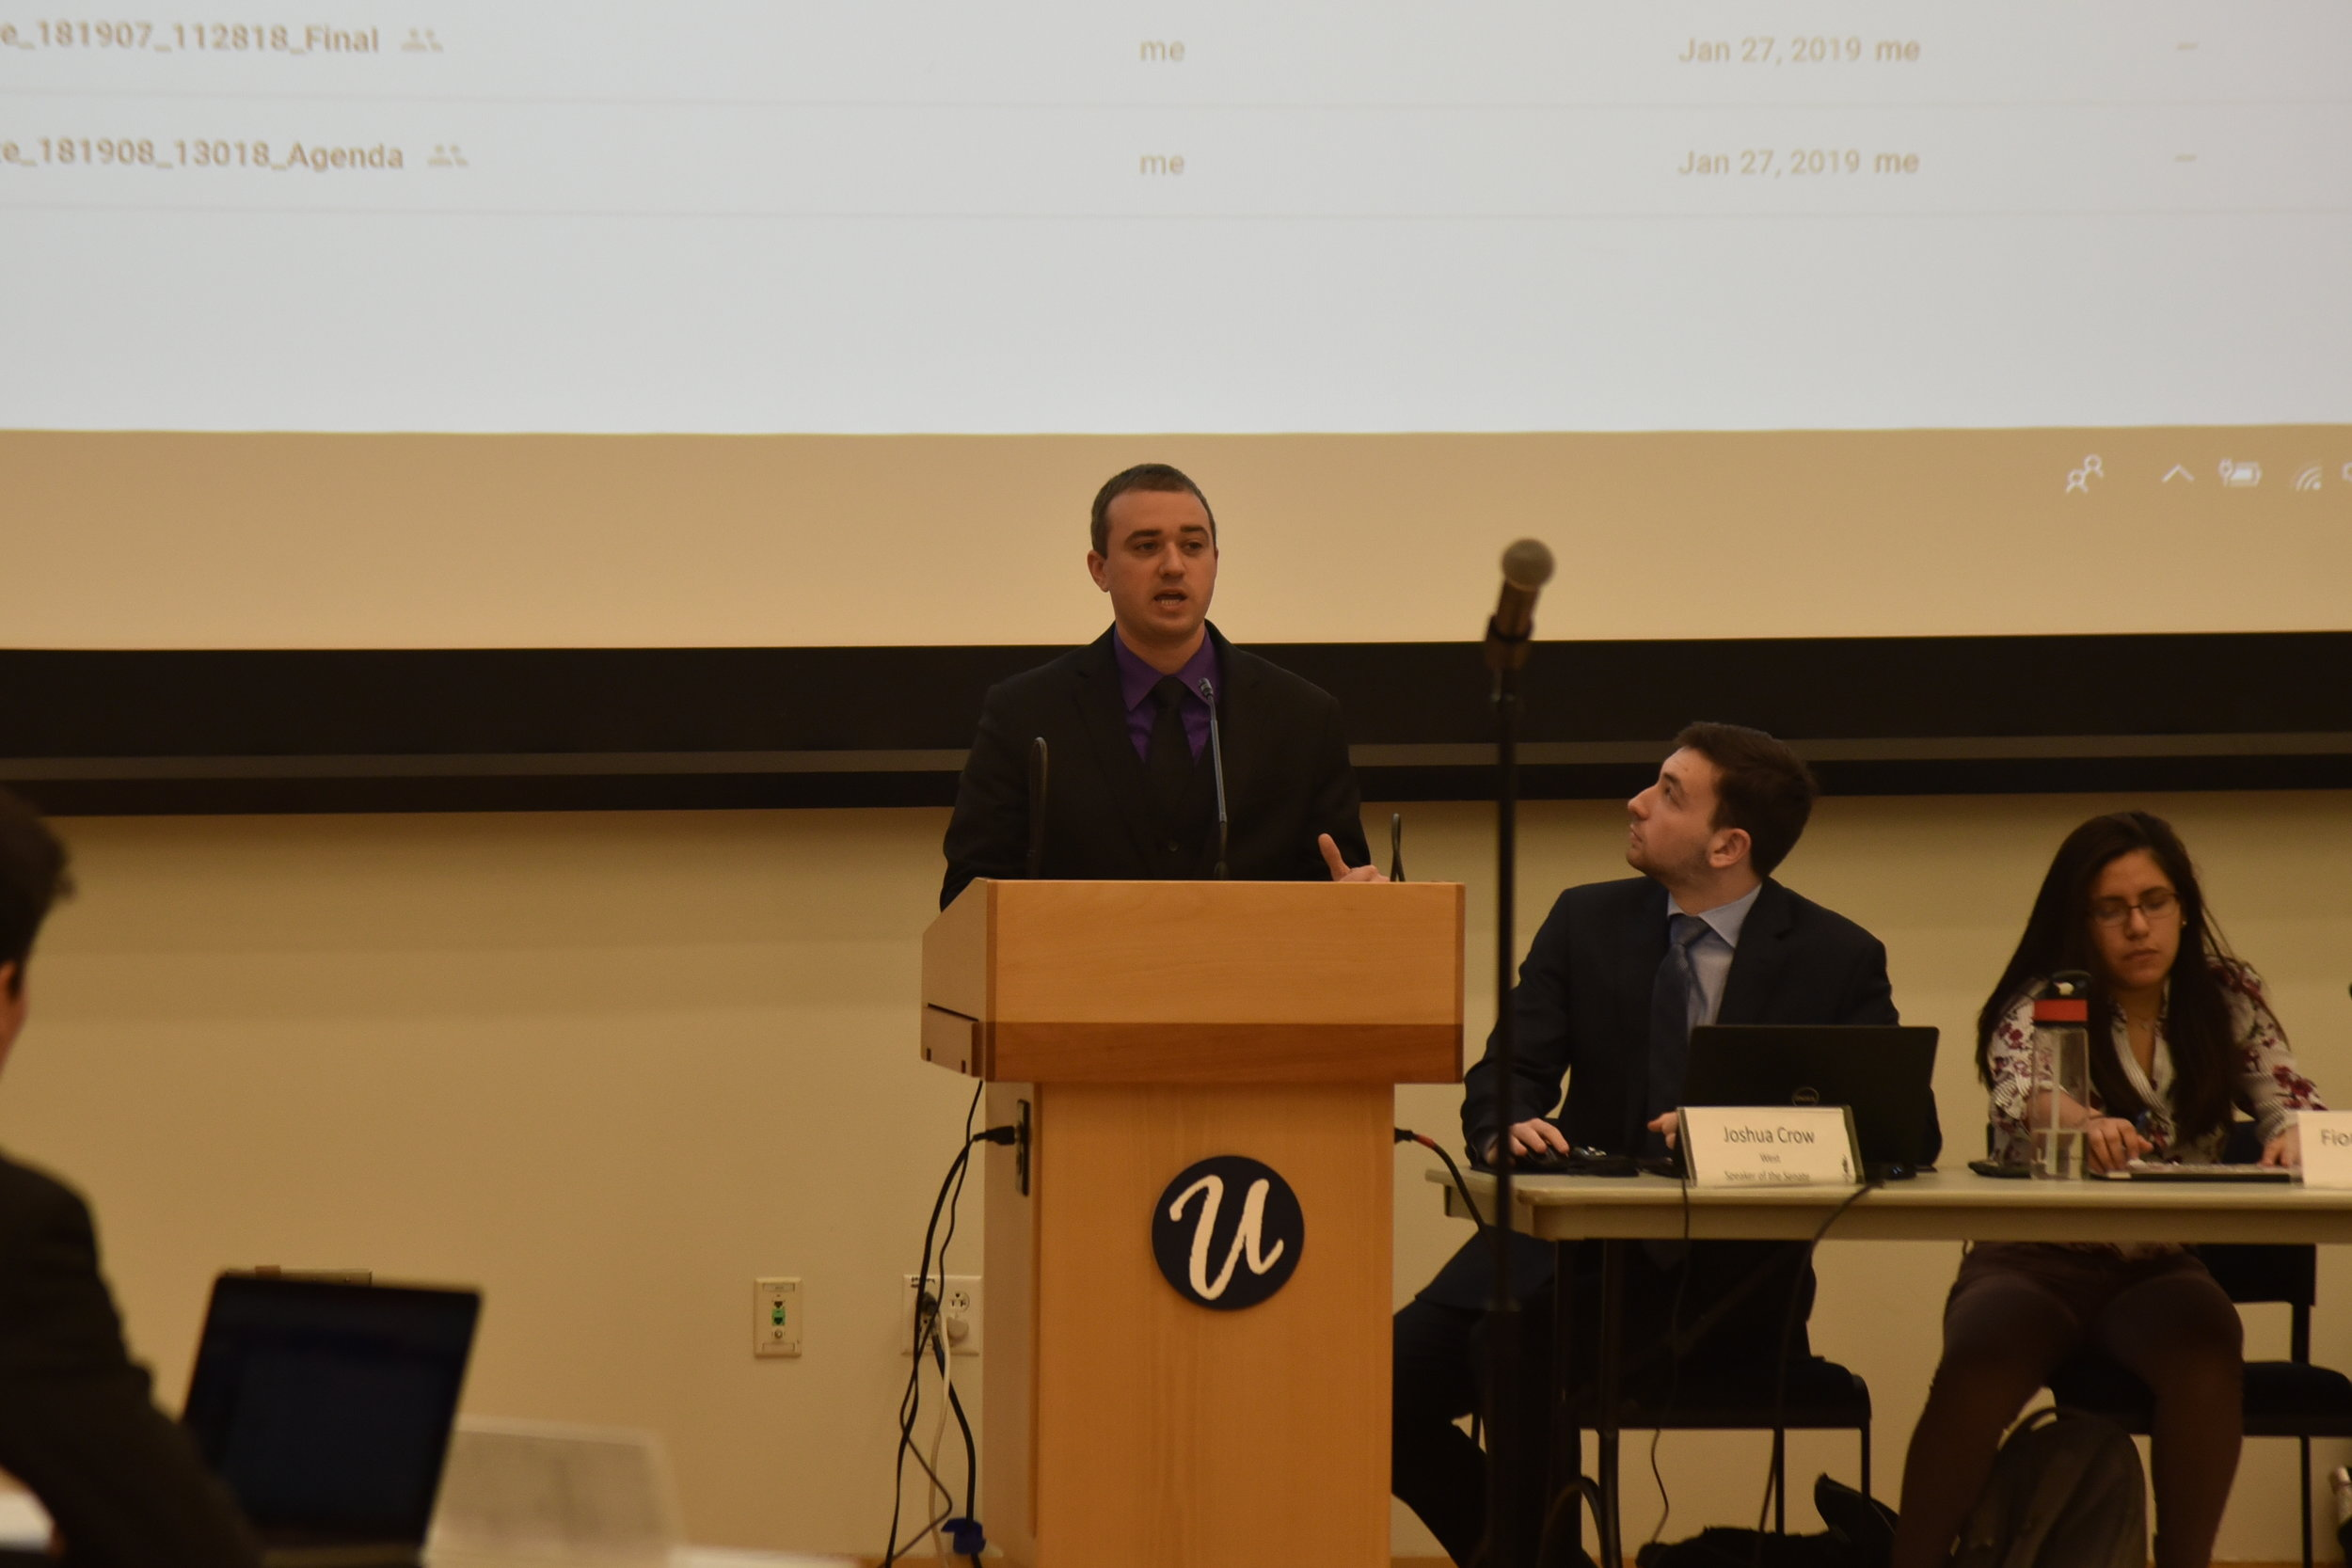 During USG's meeting on a snowy Wednesday in January, they invited a UConn Alum speaker that previously worked in USG. (Eric Yang/The Daily Campus)